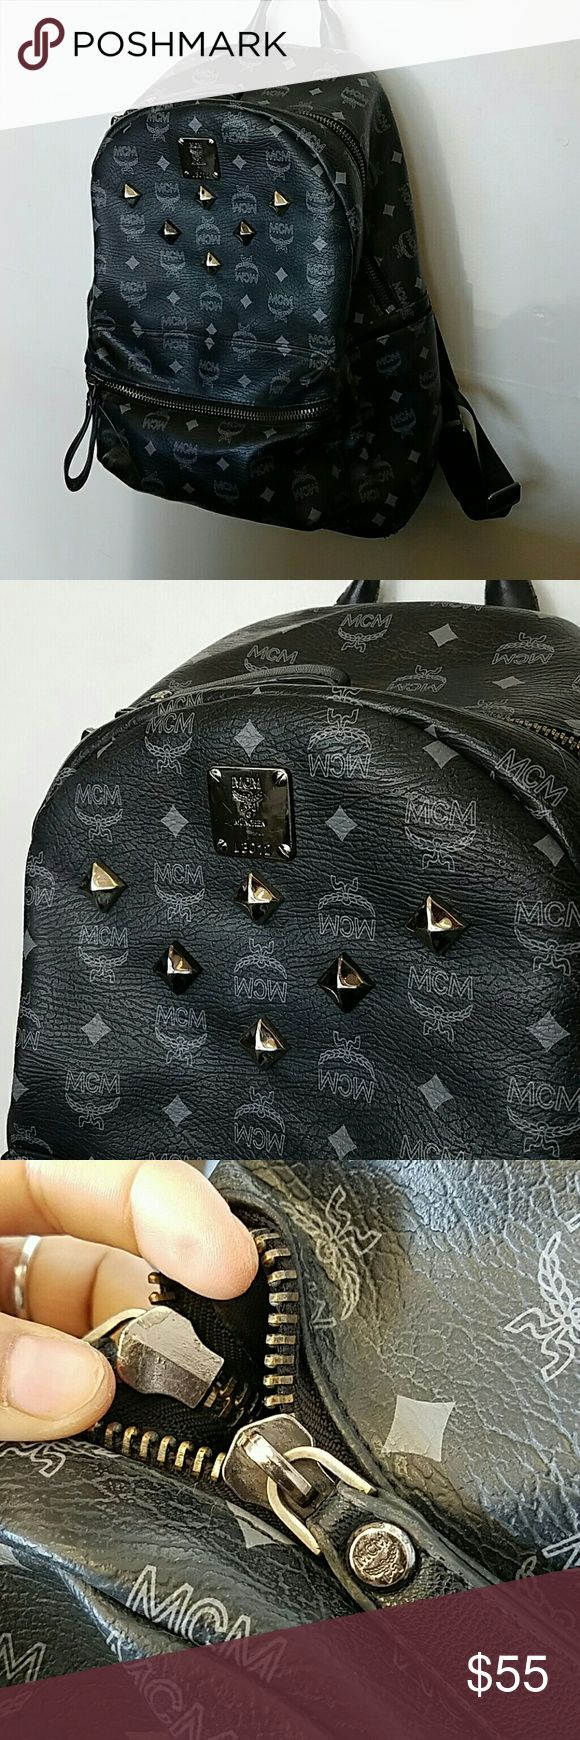 MCM studded backpack < PRICE REFLECTS AUTHENTICITY > Condition: preloved 6/10 bottom corners have wear. Material: faux leather  Hardware: black and silver   Interested? Shoot me an offer!! MCM Bags Backpacks